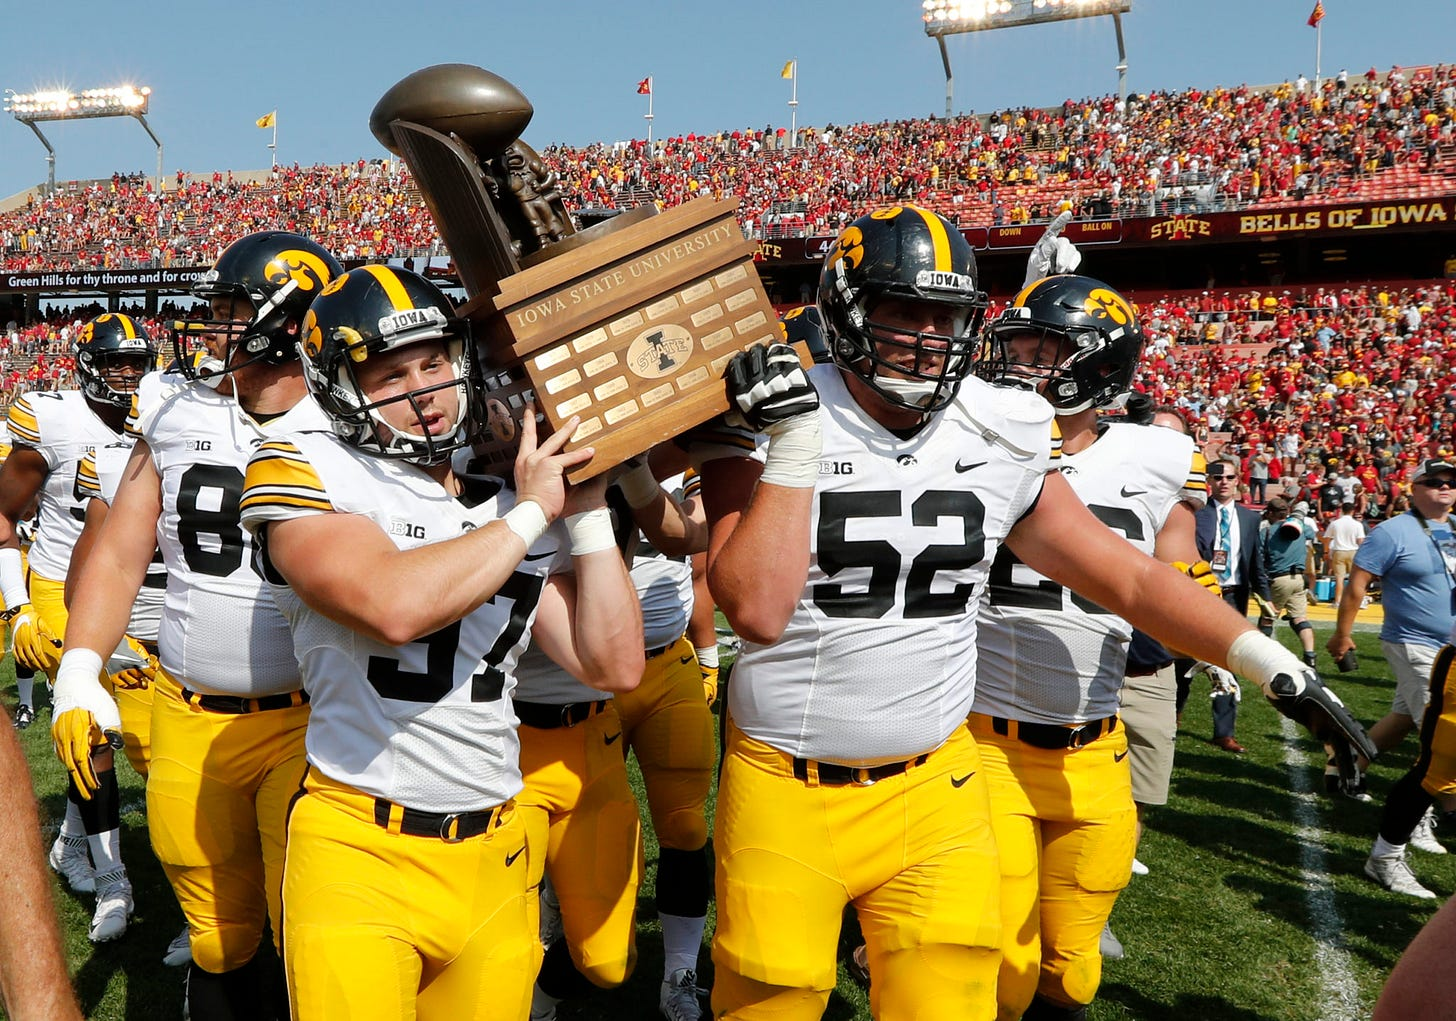 Iowa Fans React To Rivalry Game With Iowa State Being Canceled